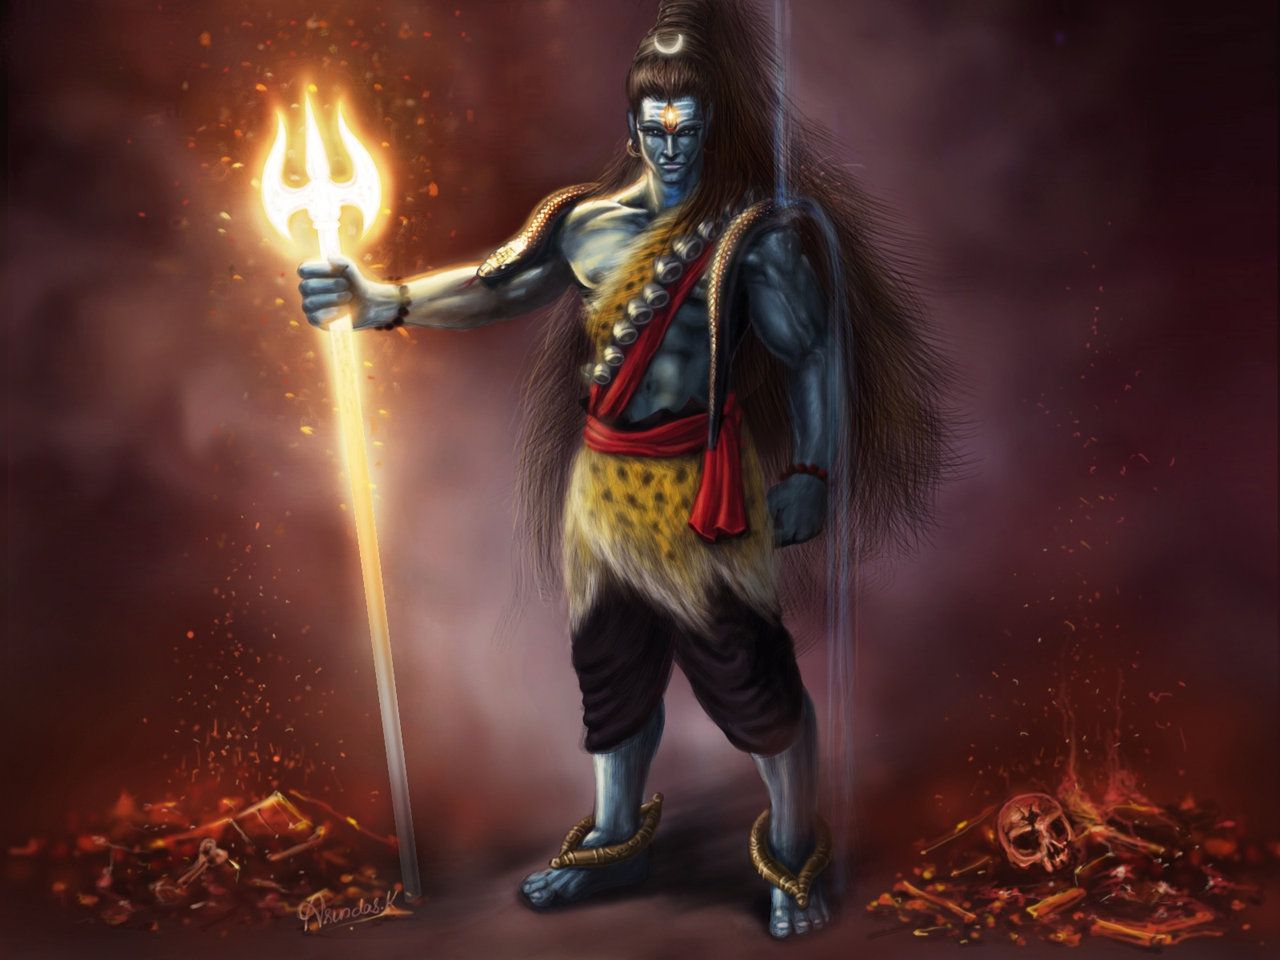 Lord Shiva Animated Wallpapers For Mobile Images 41 Hd Shiva